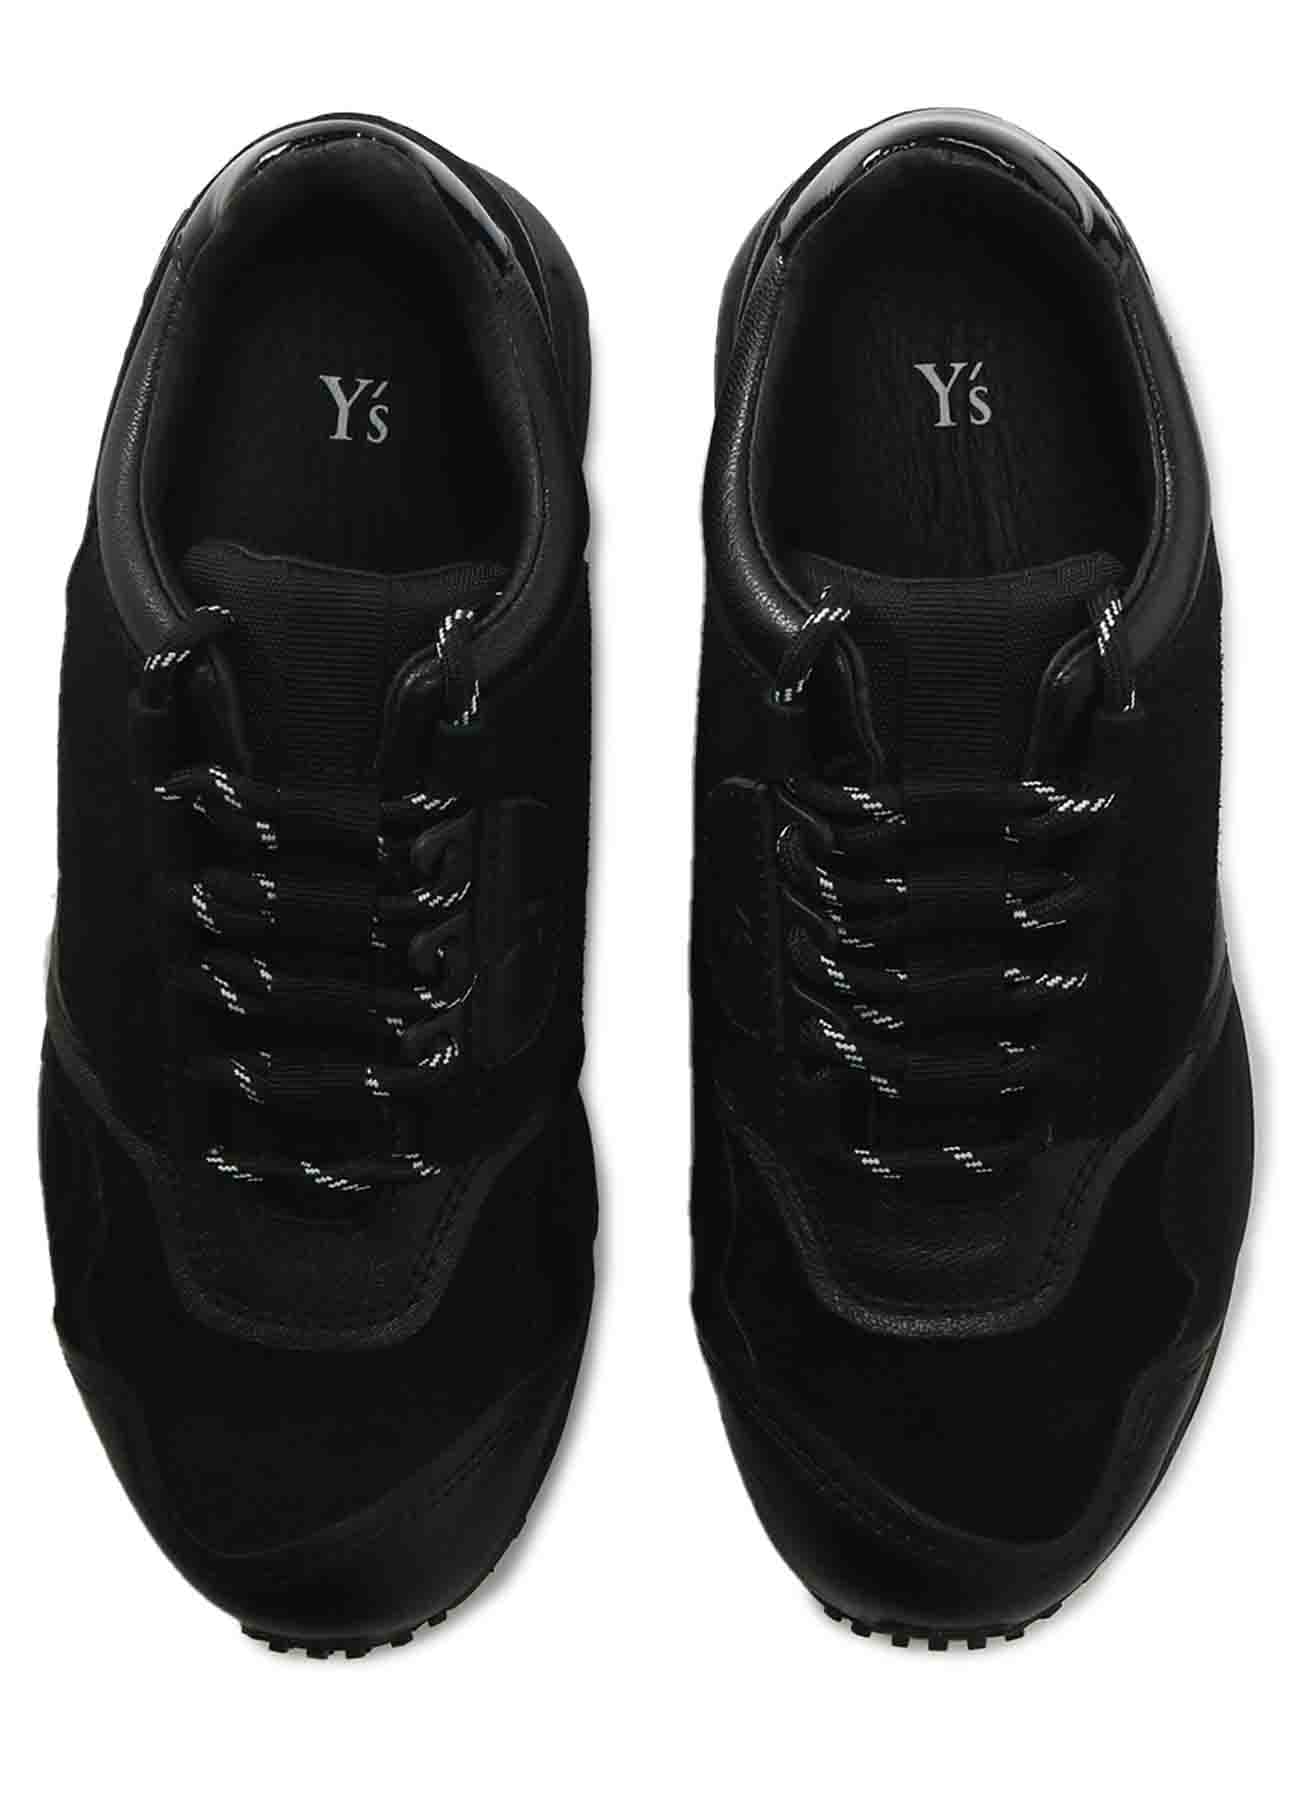 COMBI LEATHER LEATHER SNEAKERS